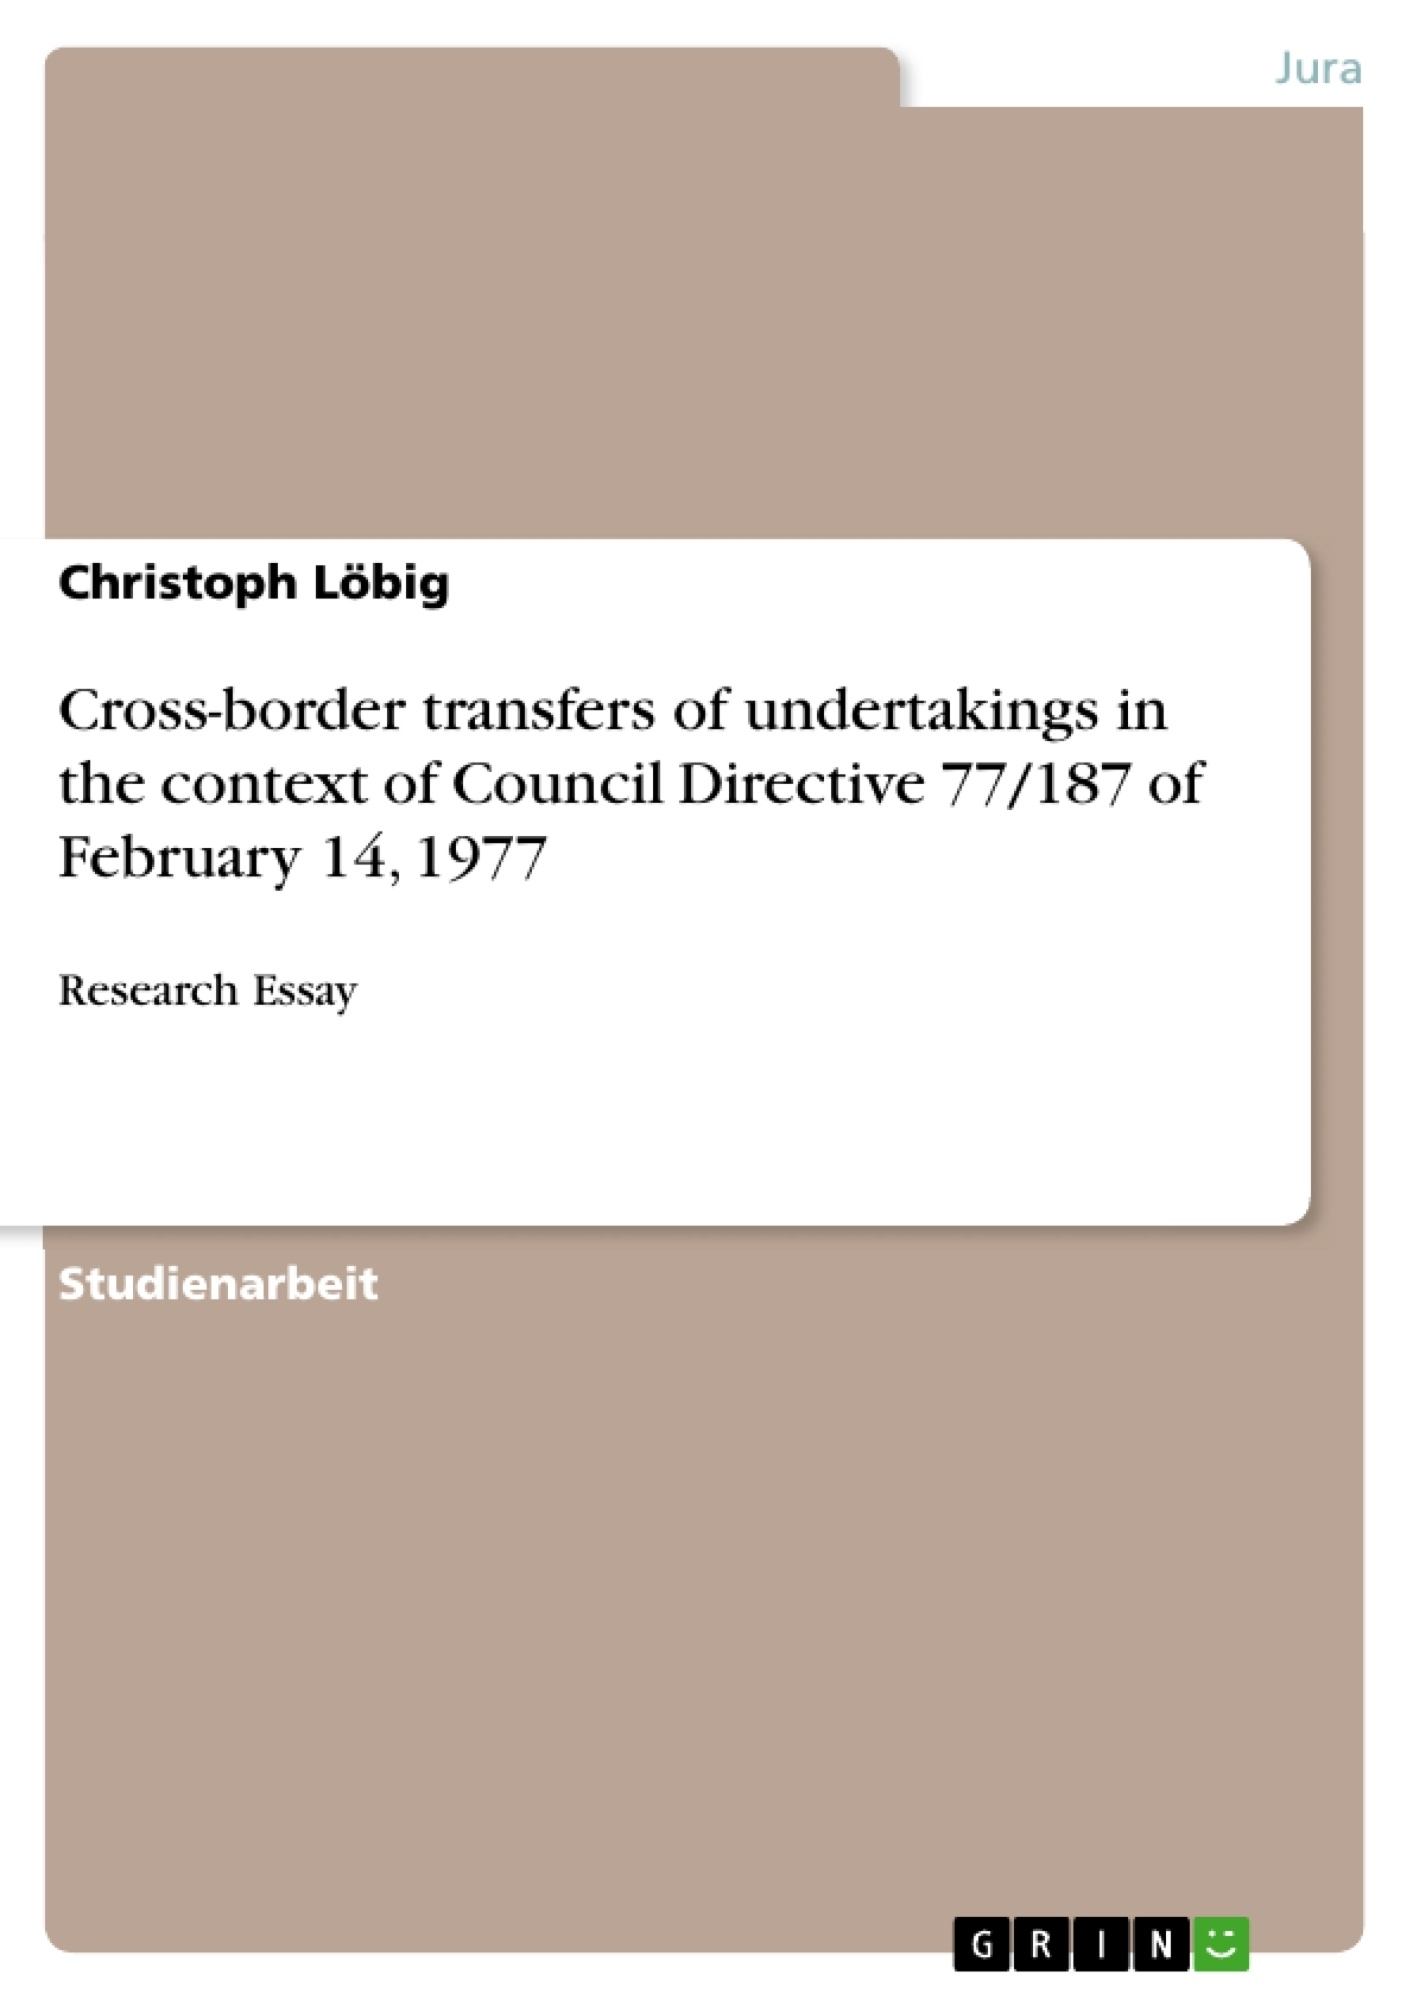 Titel: Cross-border transfers of undertakings in the context of Council Directive 77/187 of February 14, 1977